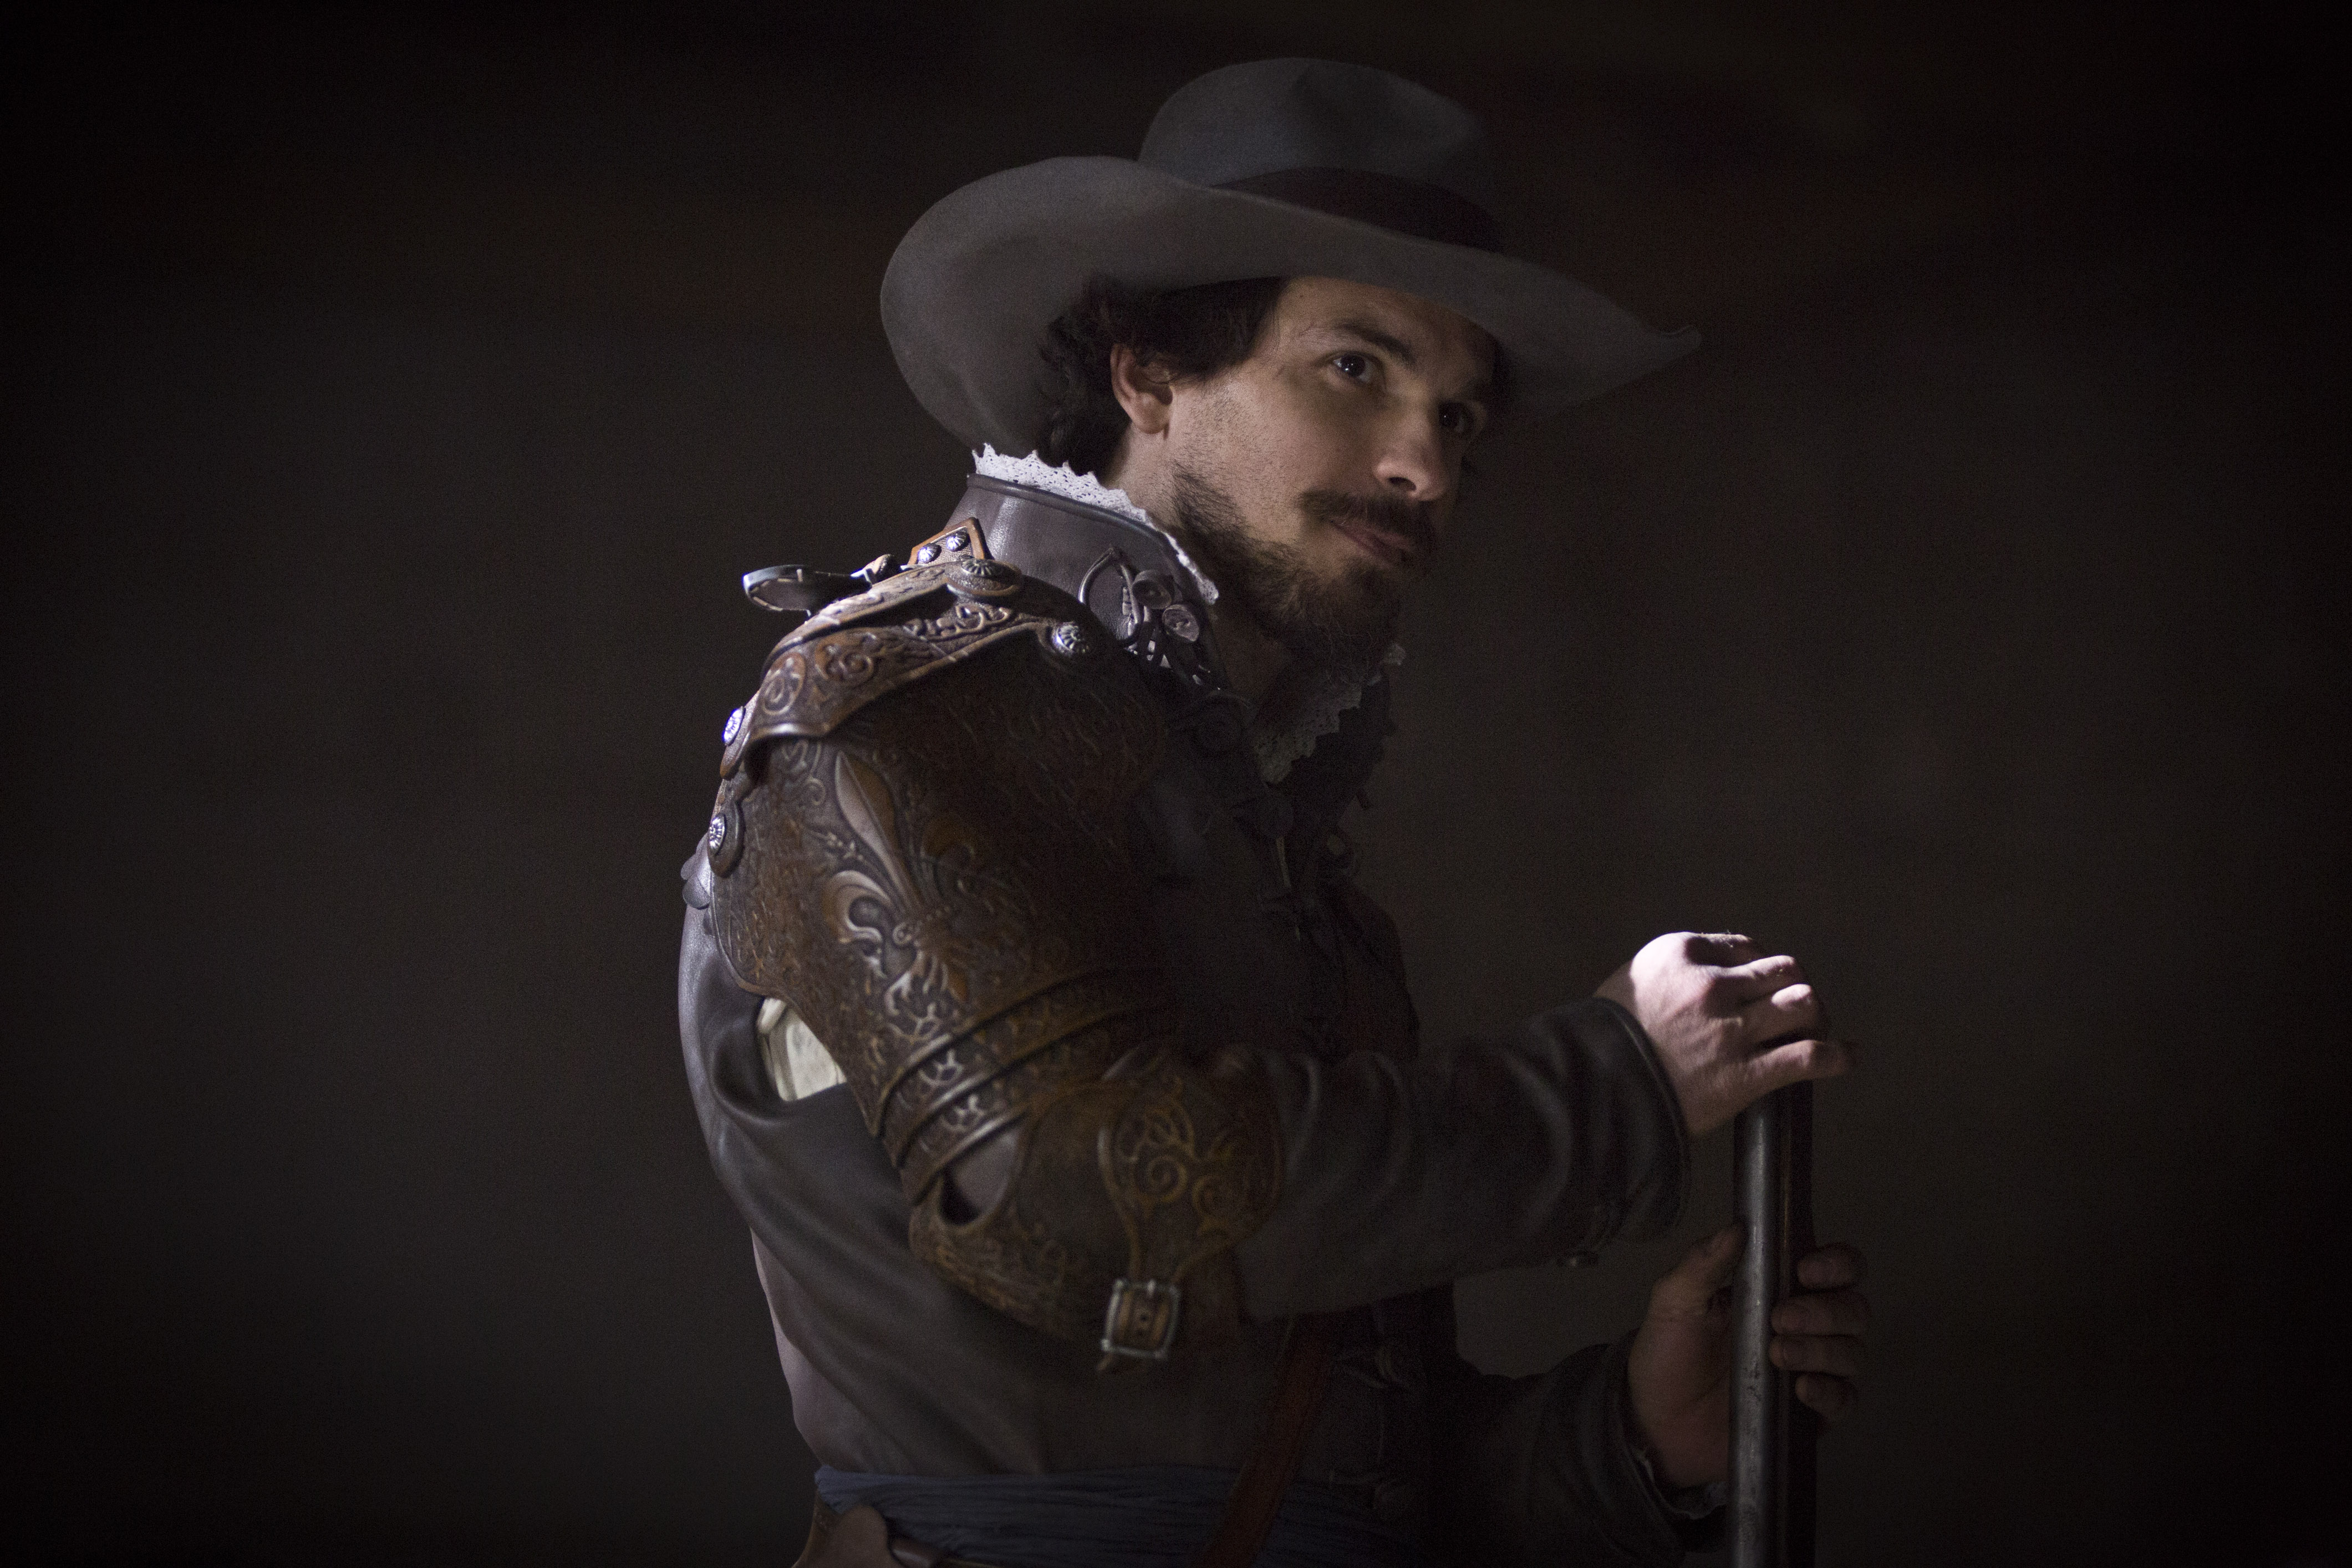 The-Musketeers-BBC-image-the-musketeers-bbc-36504078-4242-2828